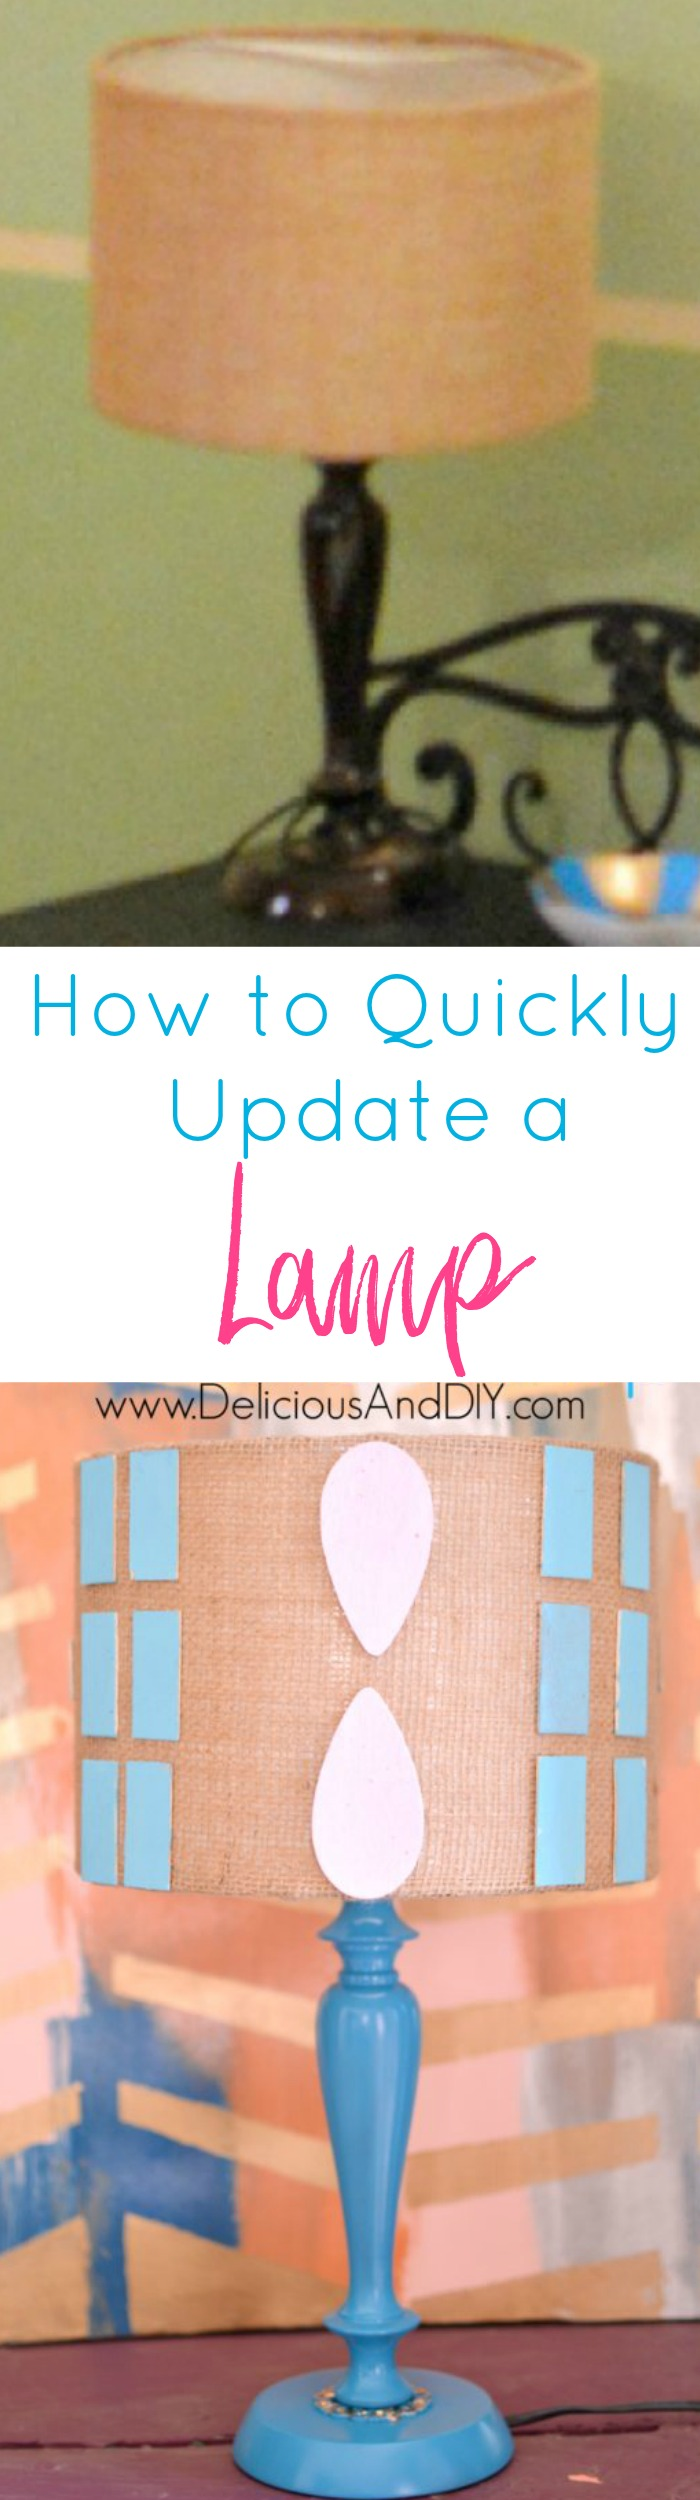 Learn how to quickly update a lamp using a few simple supplies and completely transform it| DIY Crafts| Lamp Makeover Ideas| Lighting Ideas| Lampshade Makeover| Painted Lamps| Craft Ideas